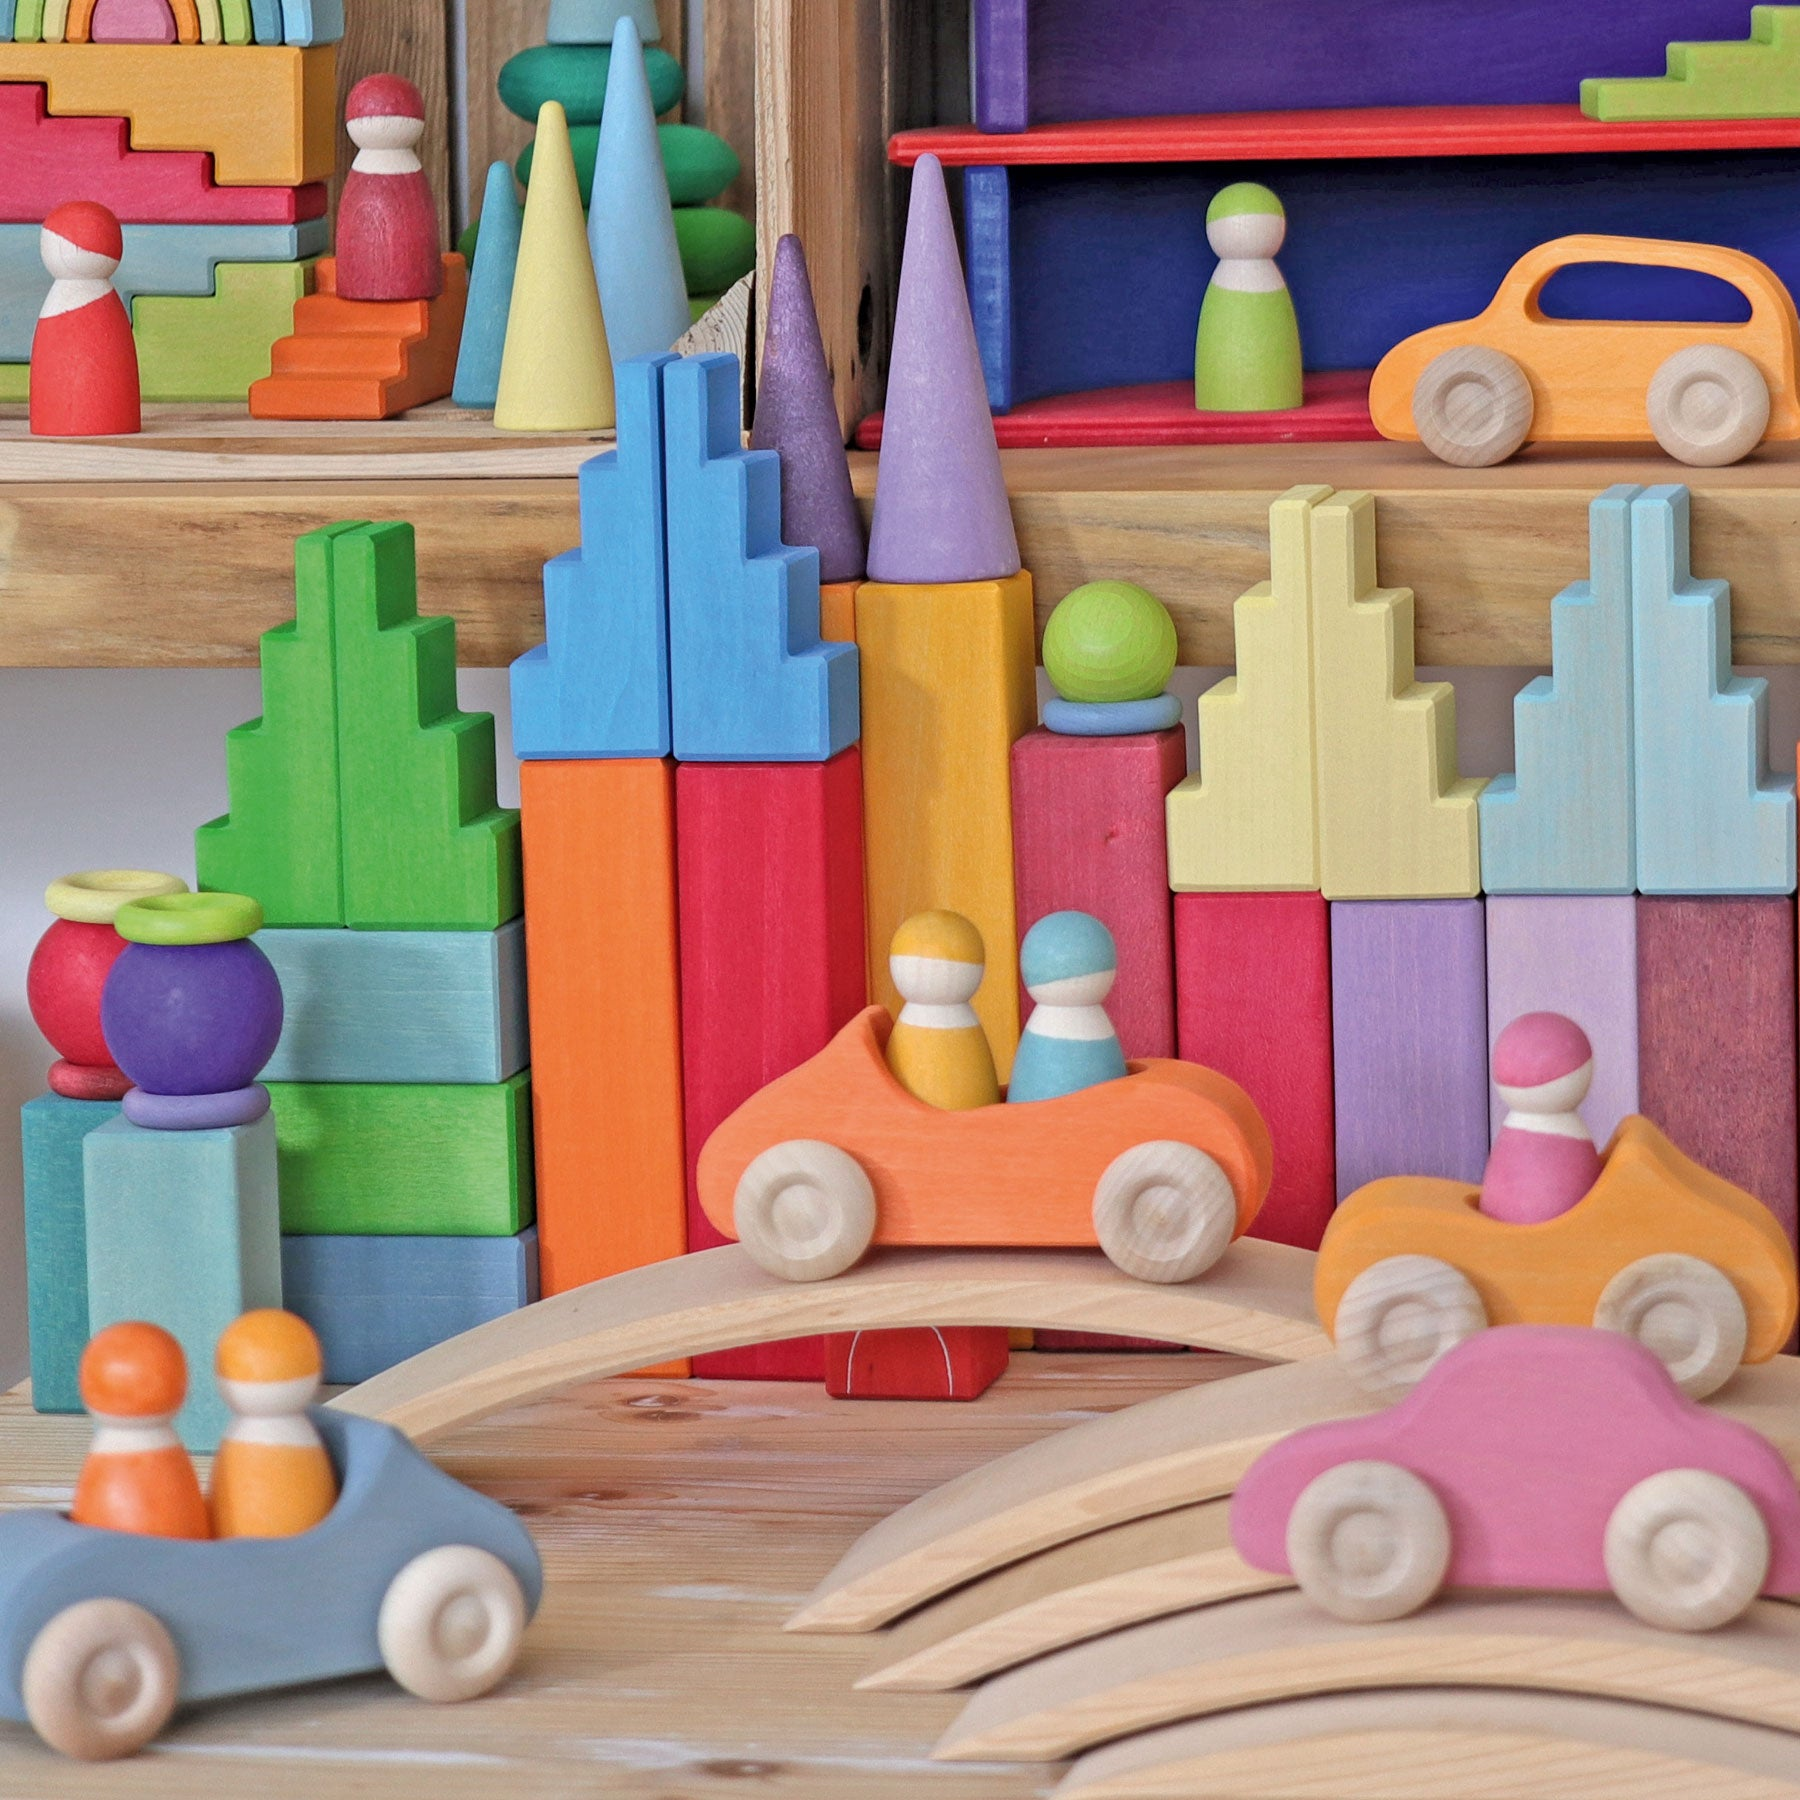 an assortment of grimms rainbow and pastel building blocks, cars and peg people in an interior space.